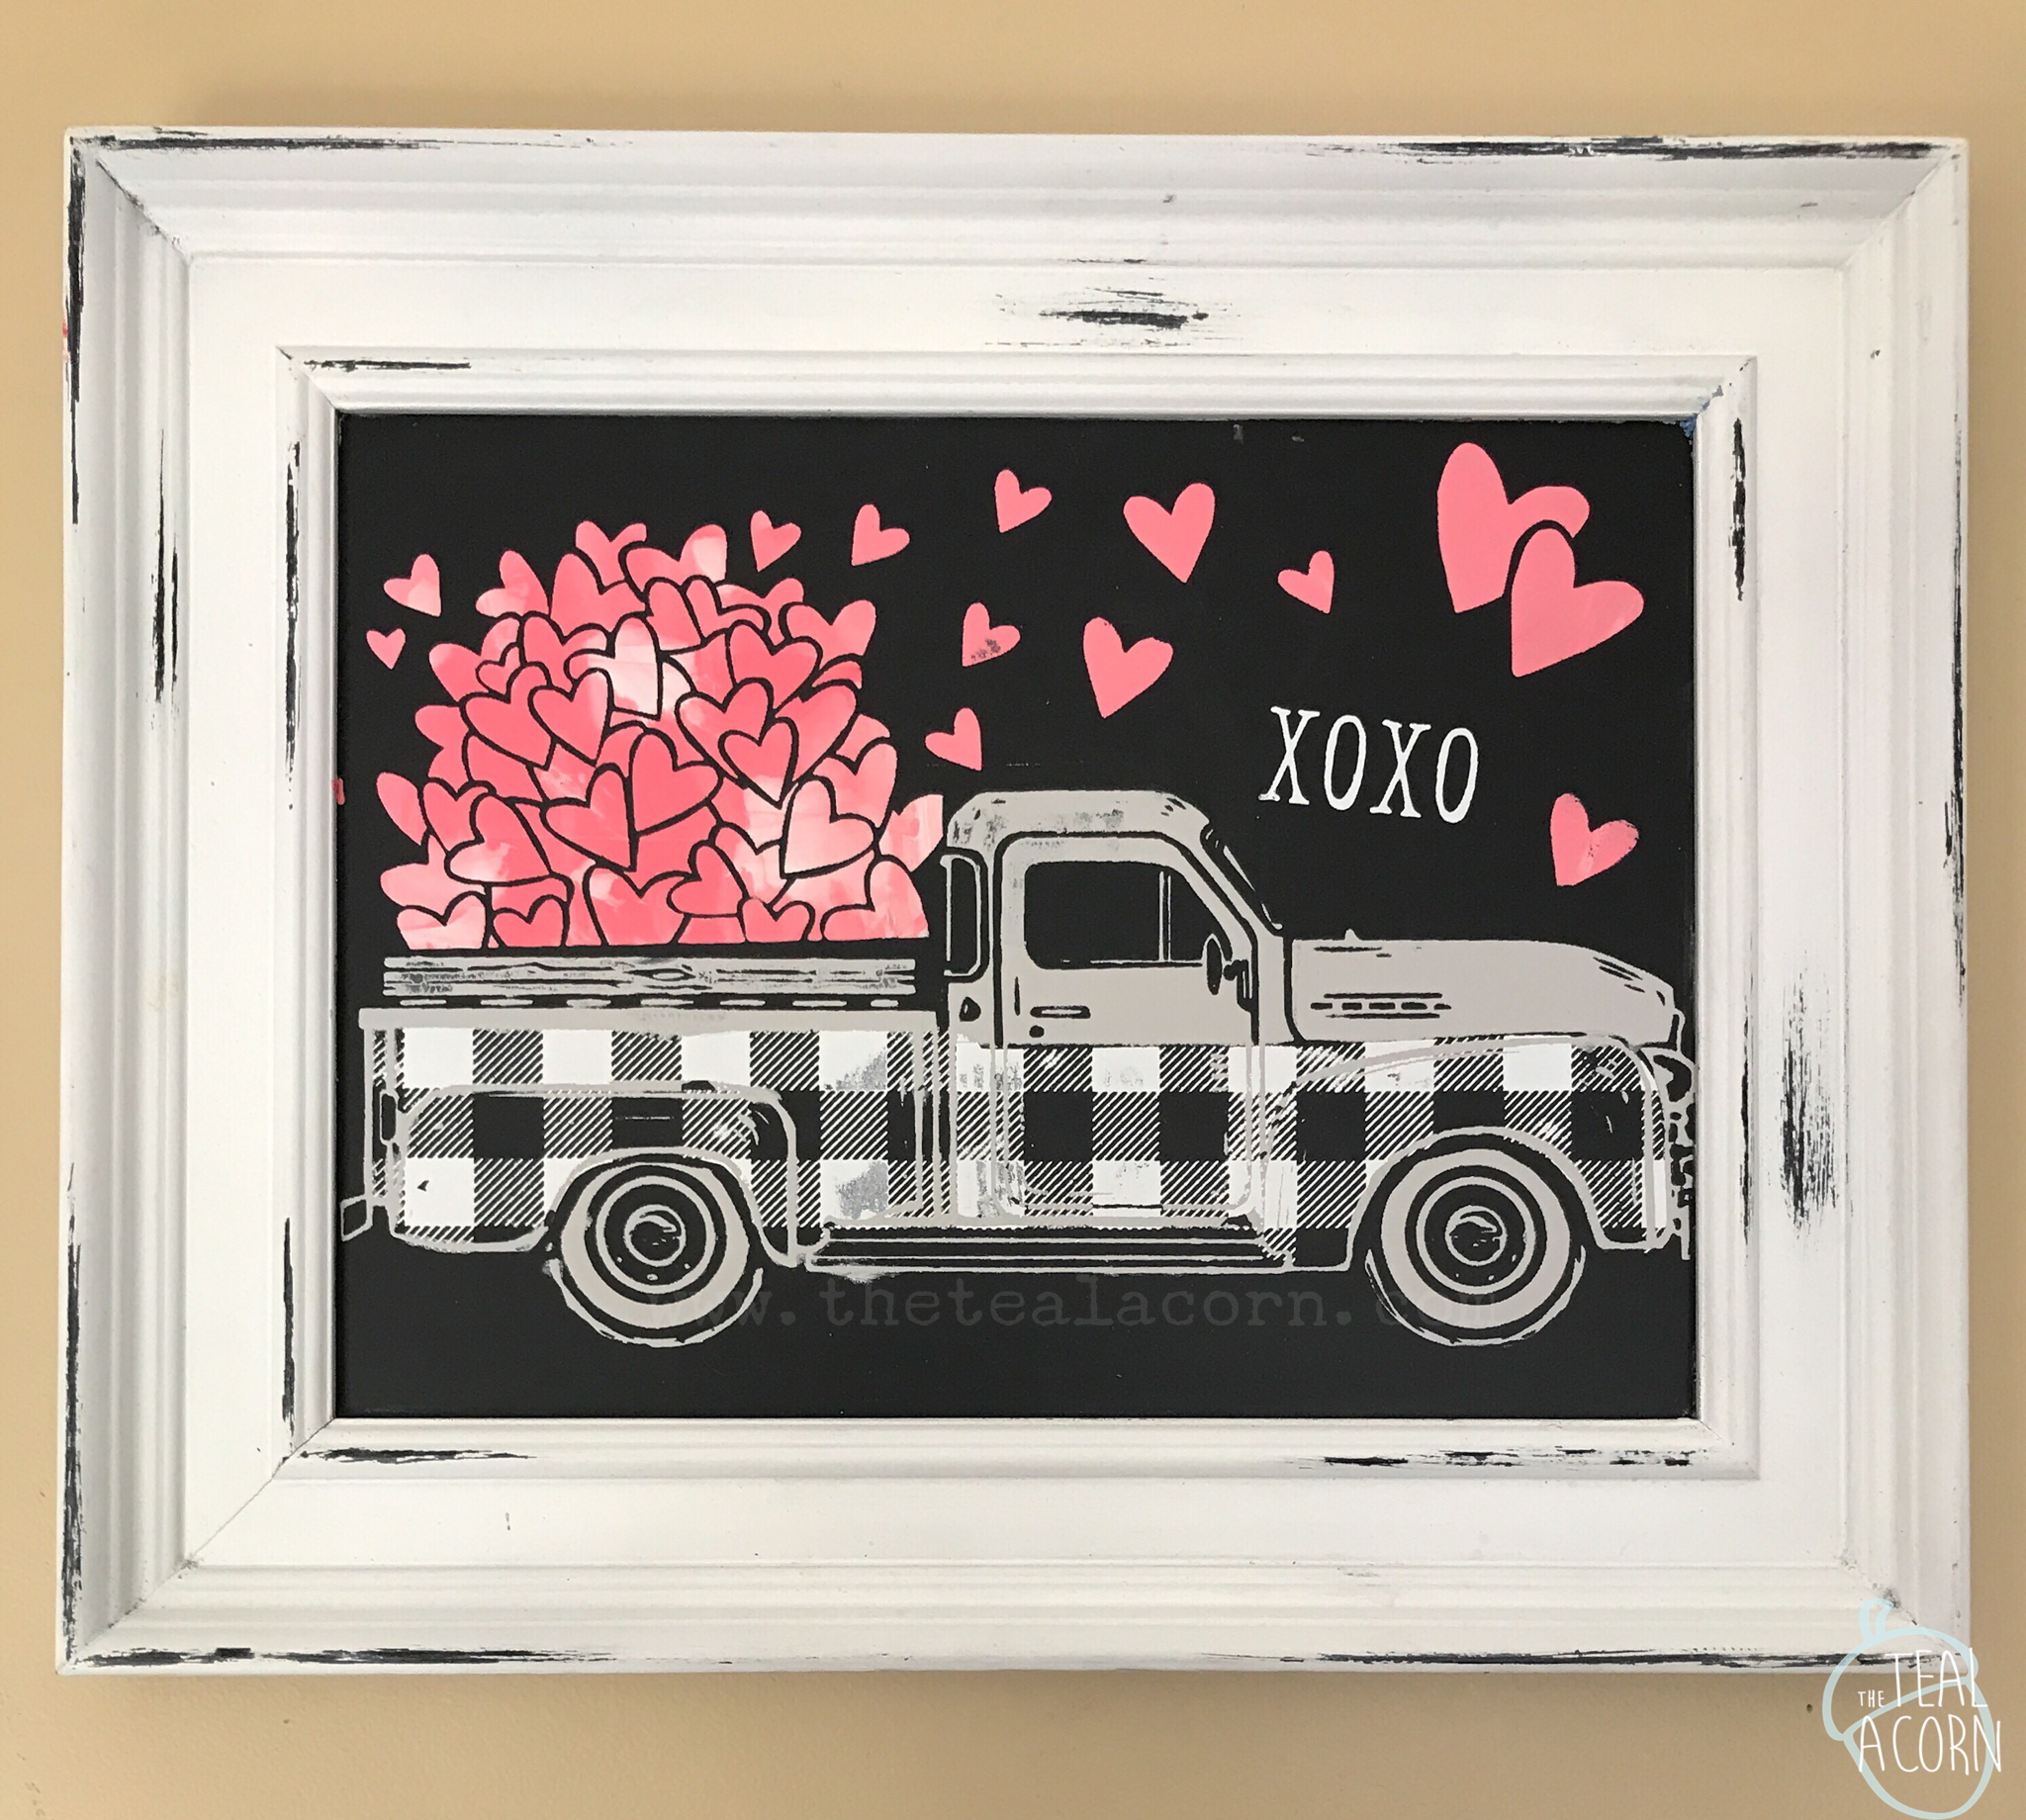 chalk couture Aiden chalkboard with vintage truck design. The winter and spring add on was used as well as fresh linen, white, and coral chalk paste.